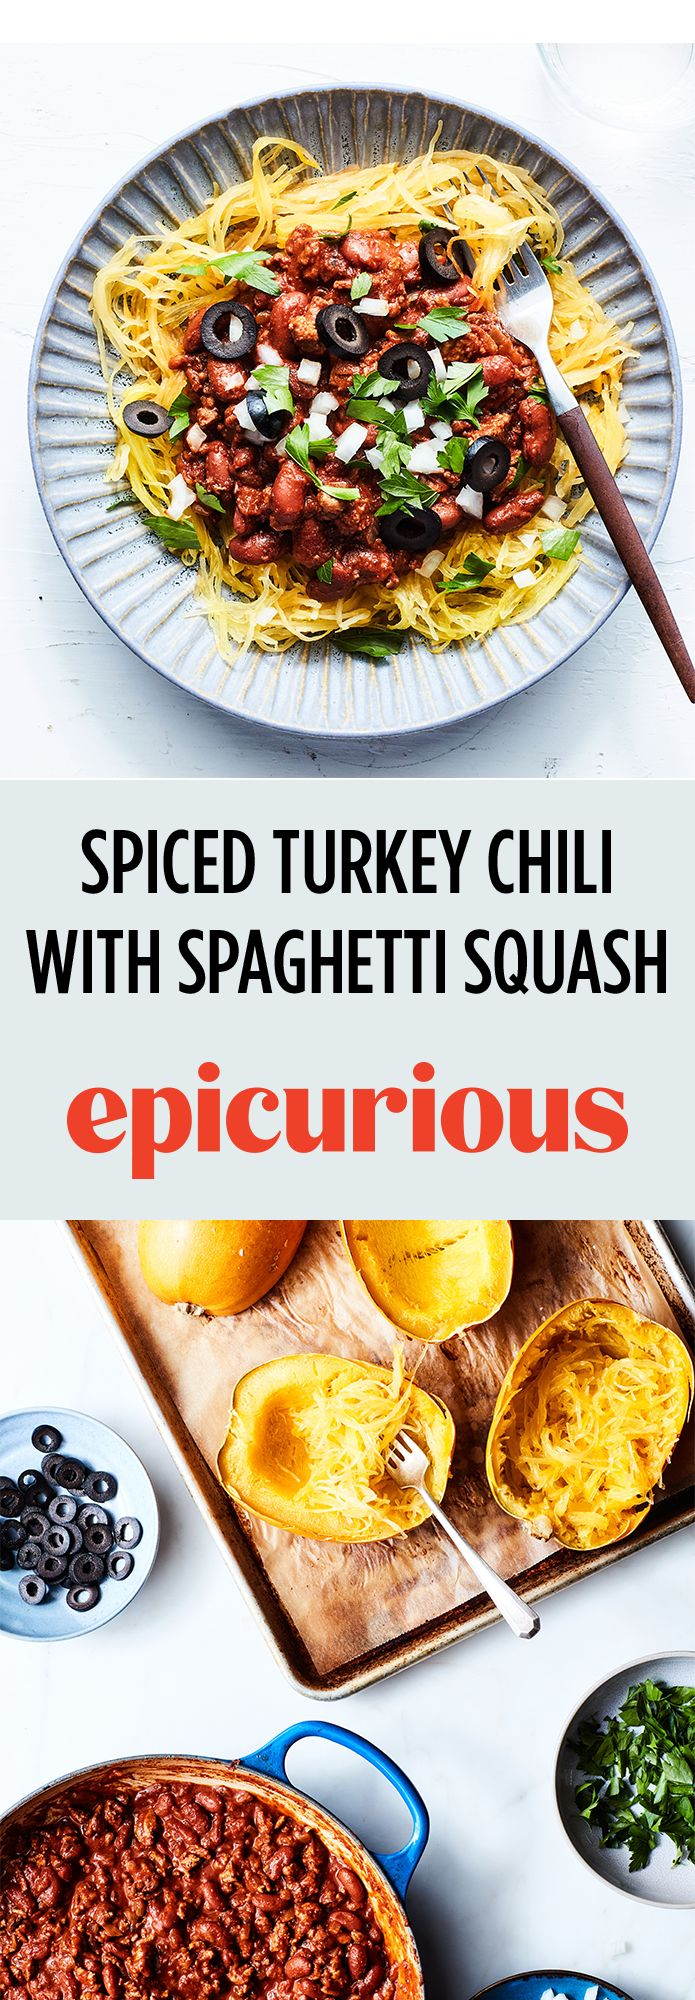 40 best low carb recipes images on pinterest low calorie recipes spiced turkey chili with spaghetti squash recipe epicurious forumfinder Gallery